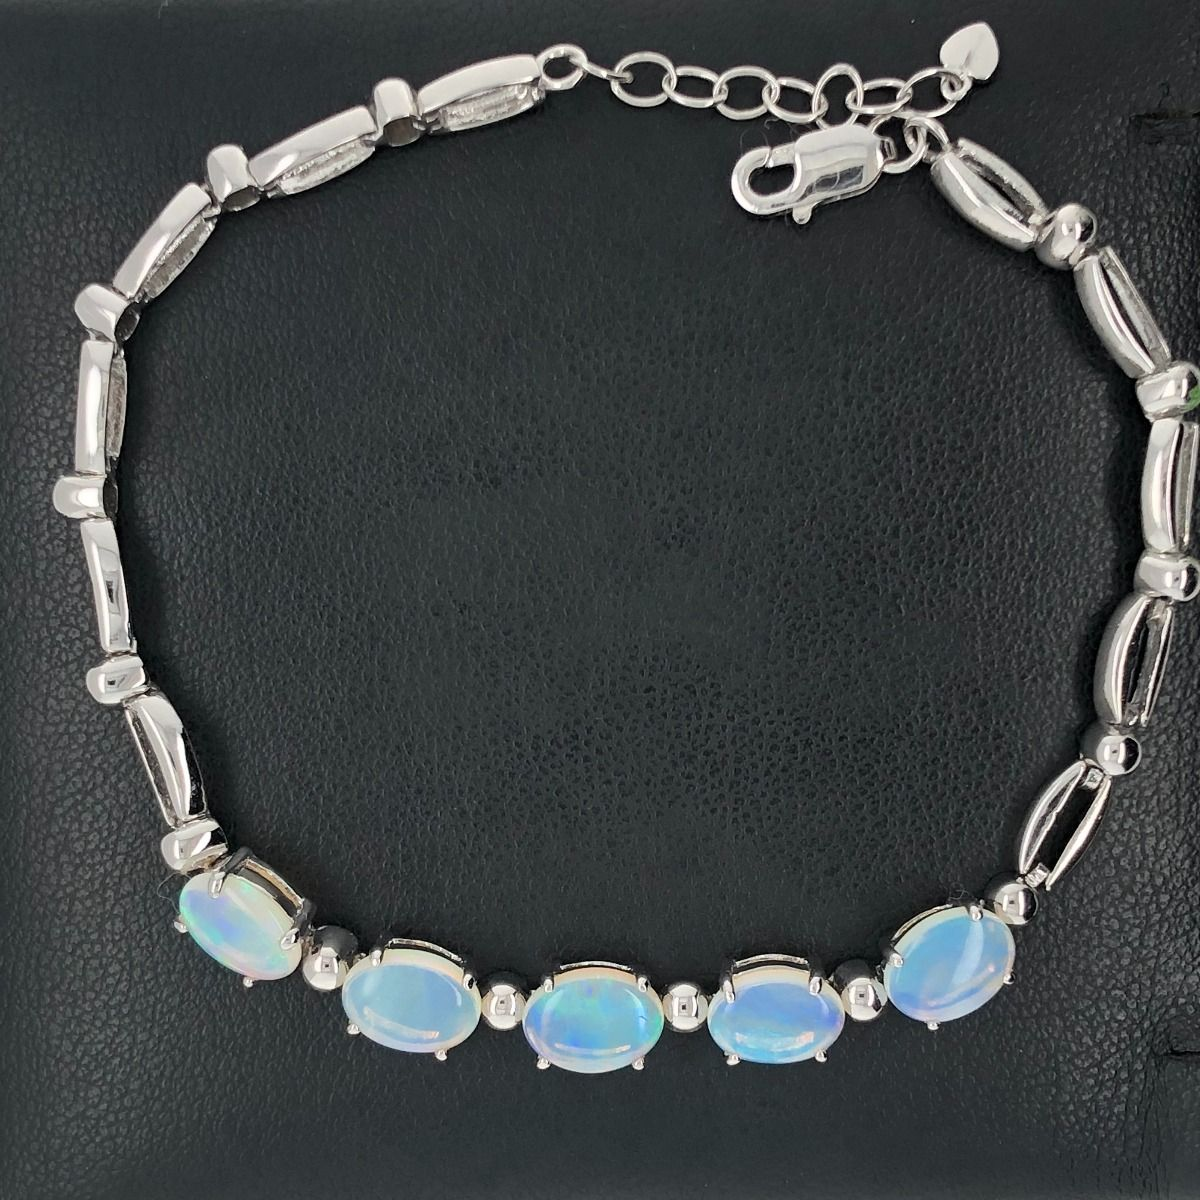 Sterling Silver Solid Opal Bracelet with 5 stones (8x6)